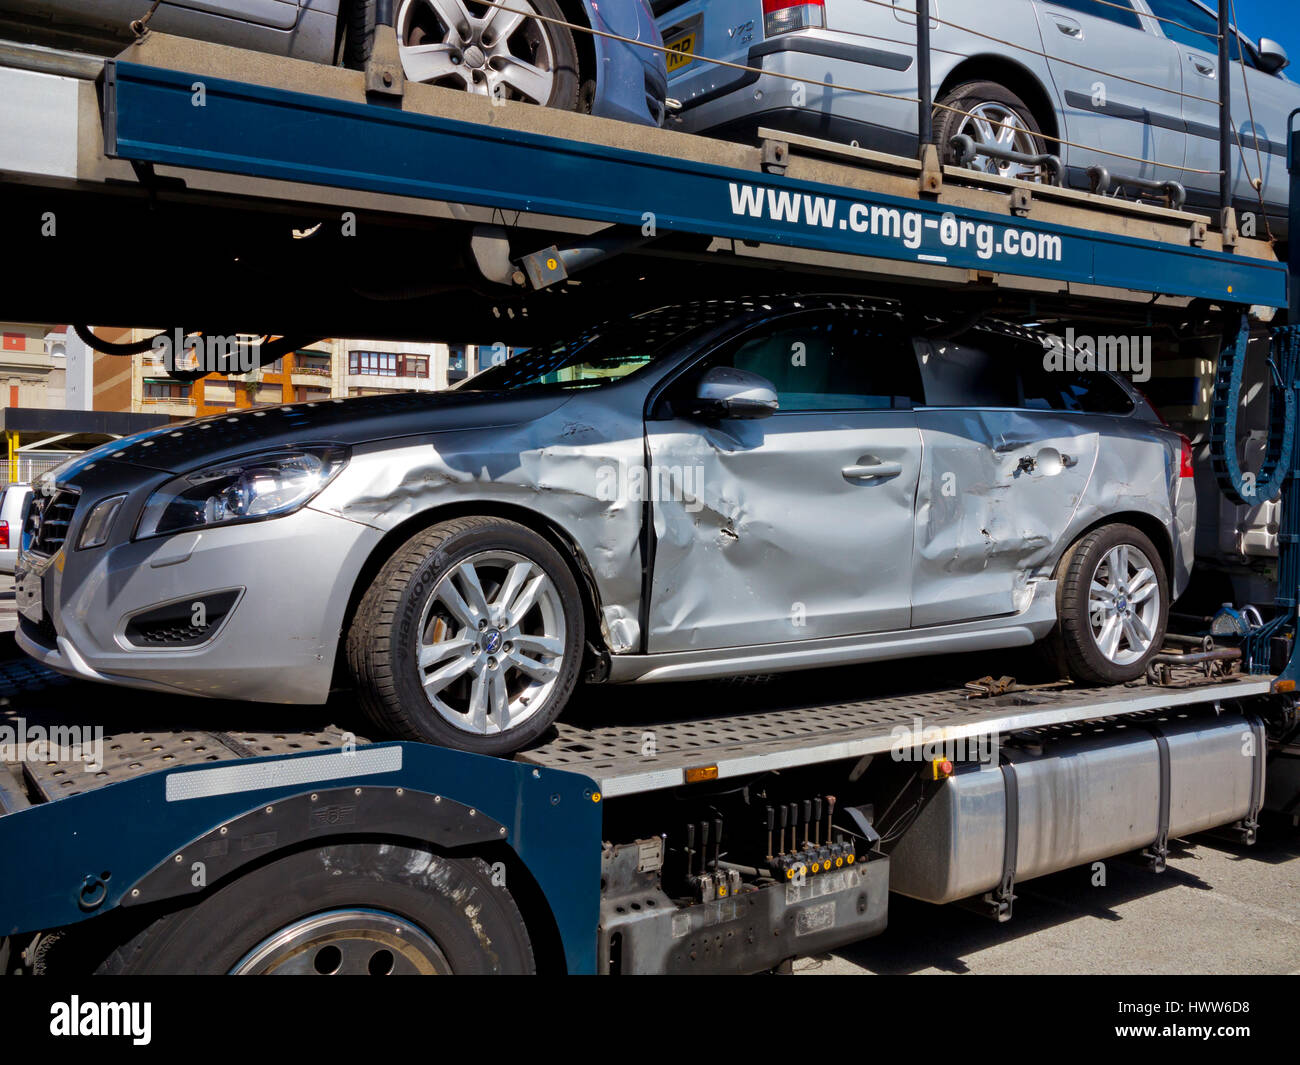 Car transporter loaded with accident damaged cars Stock Photo ...